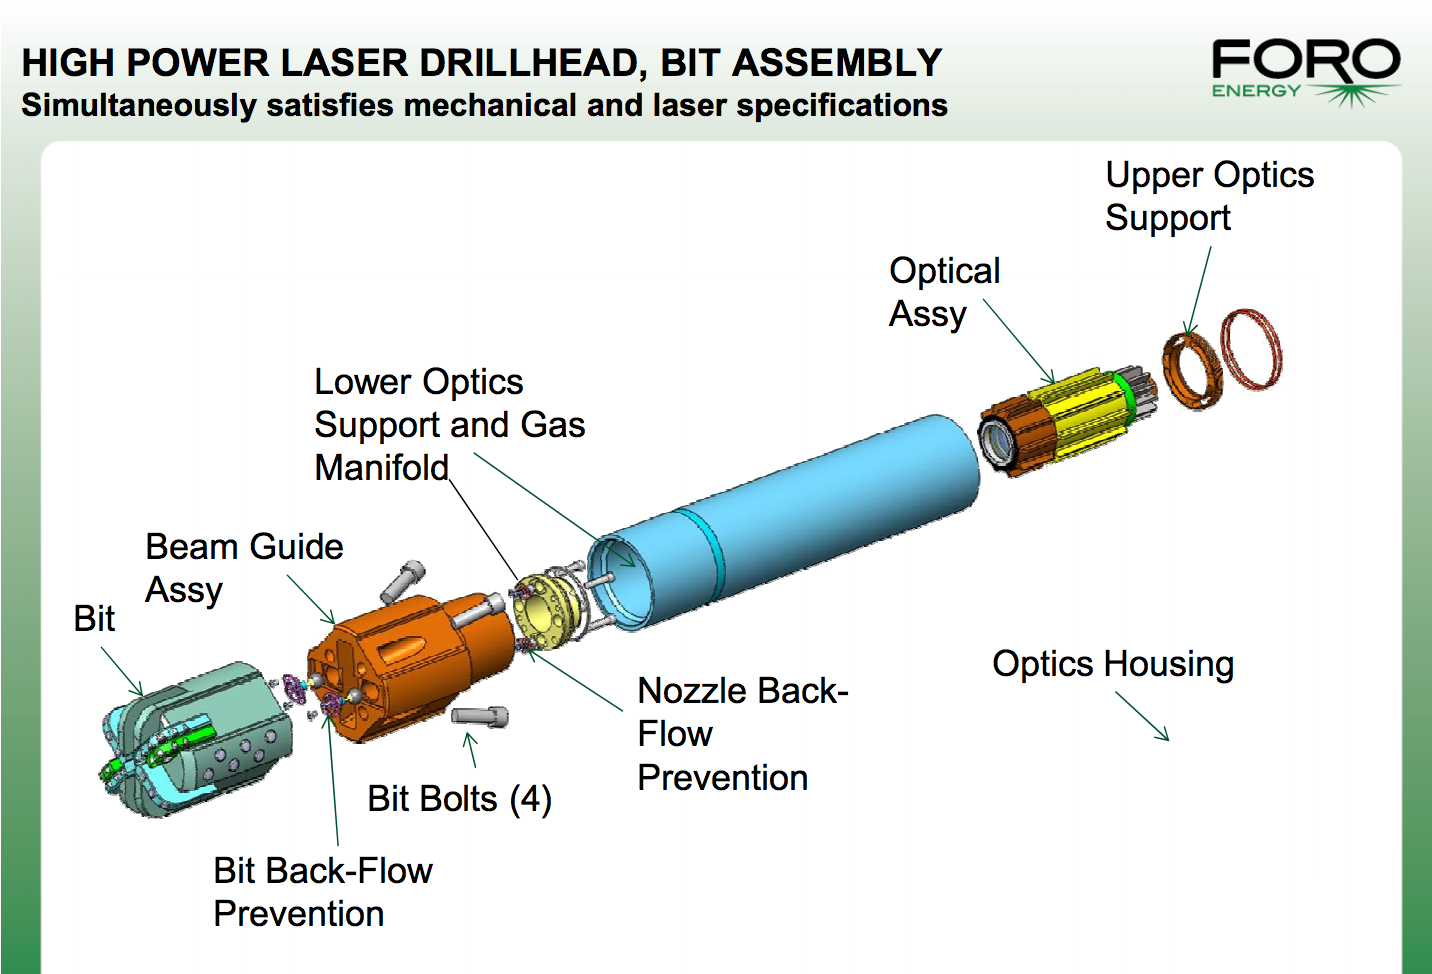 Breakthroughs In High Power Fiber Lasers Enables Four Times Faster Optic Cablethe Global Solution Components Here Is A 2012 Presentation On Foro Energy Laser Drilling